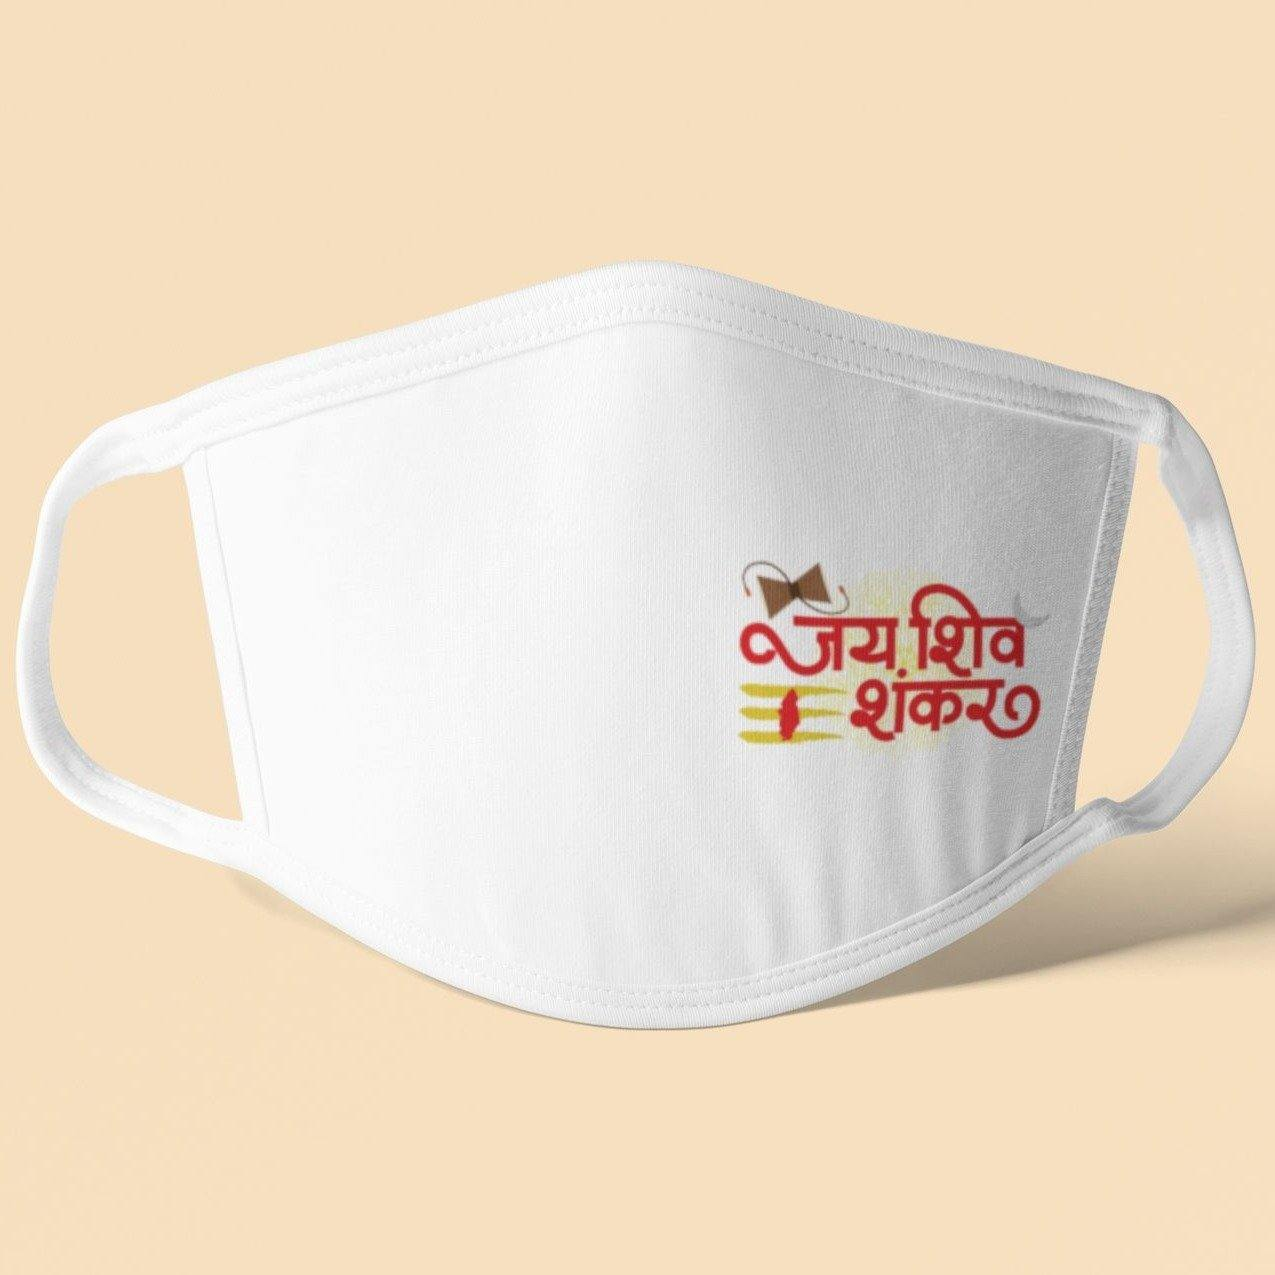 Spiritual Edition 3 - Pack of 3 Masks - Daily Suvichar Store